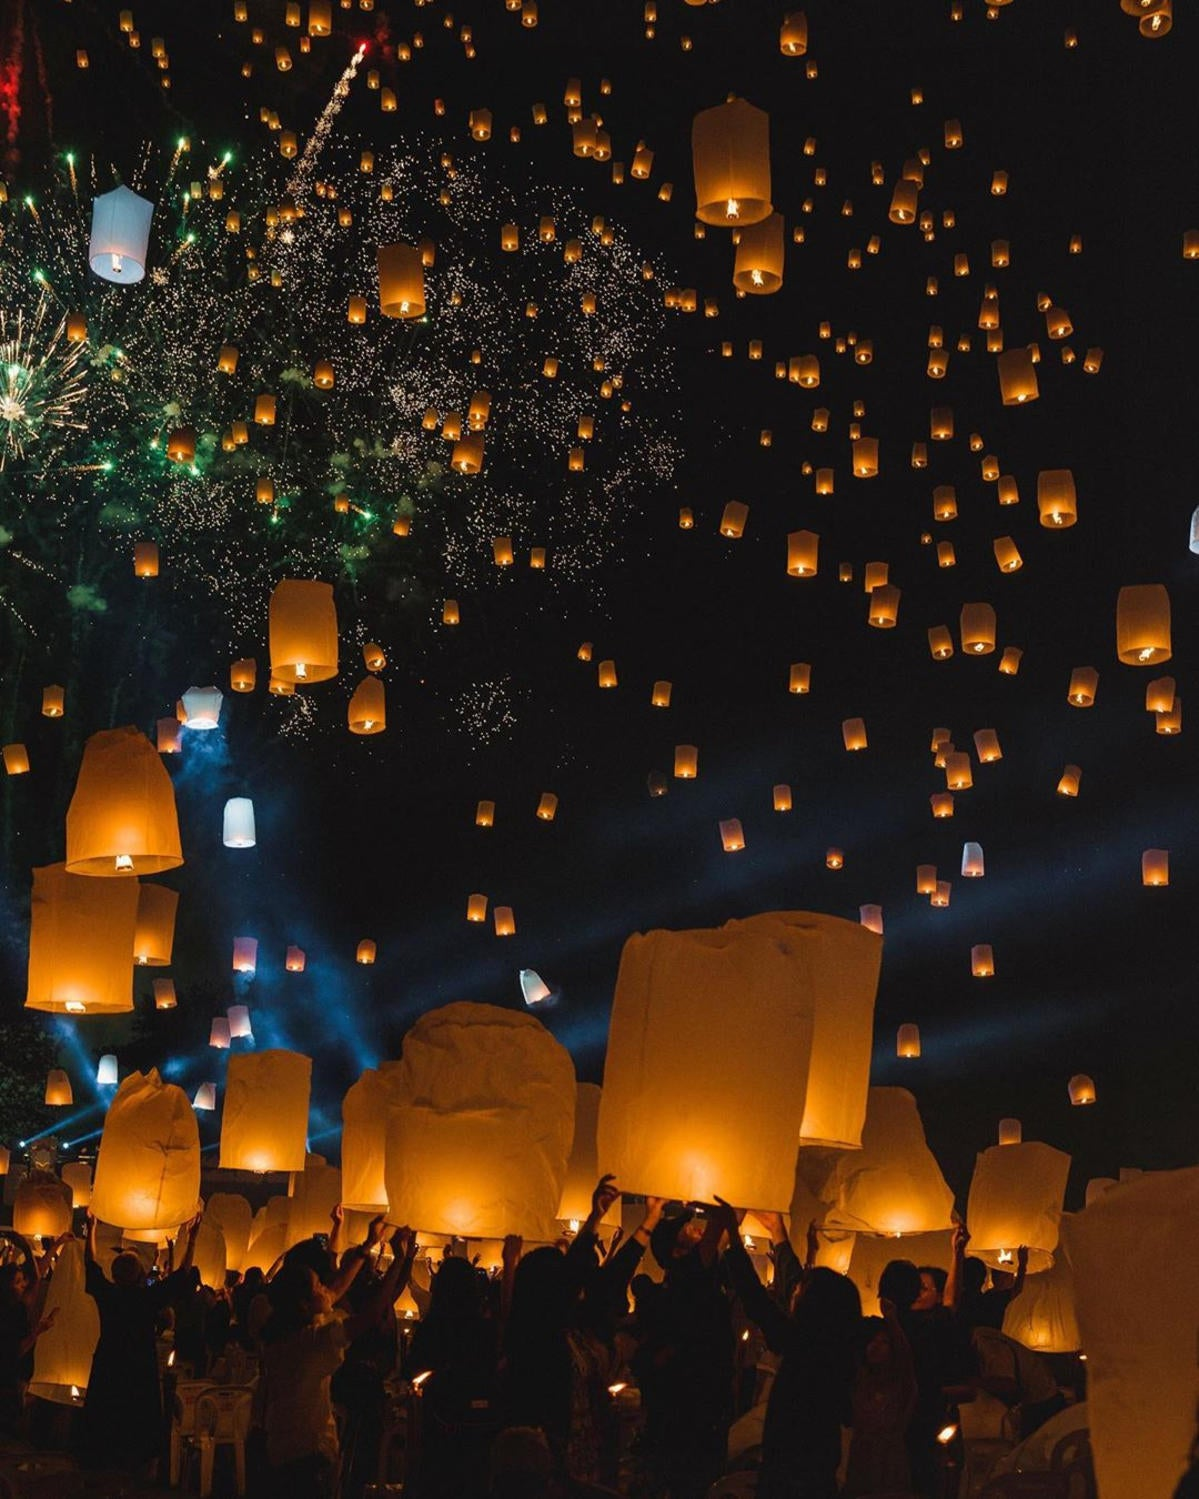 Behind The Scenes The Floating Lanterns Festival In Thailand Sony Alpha Universe